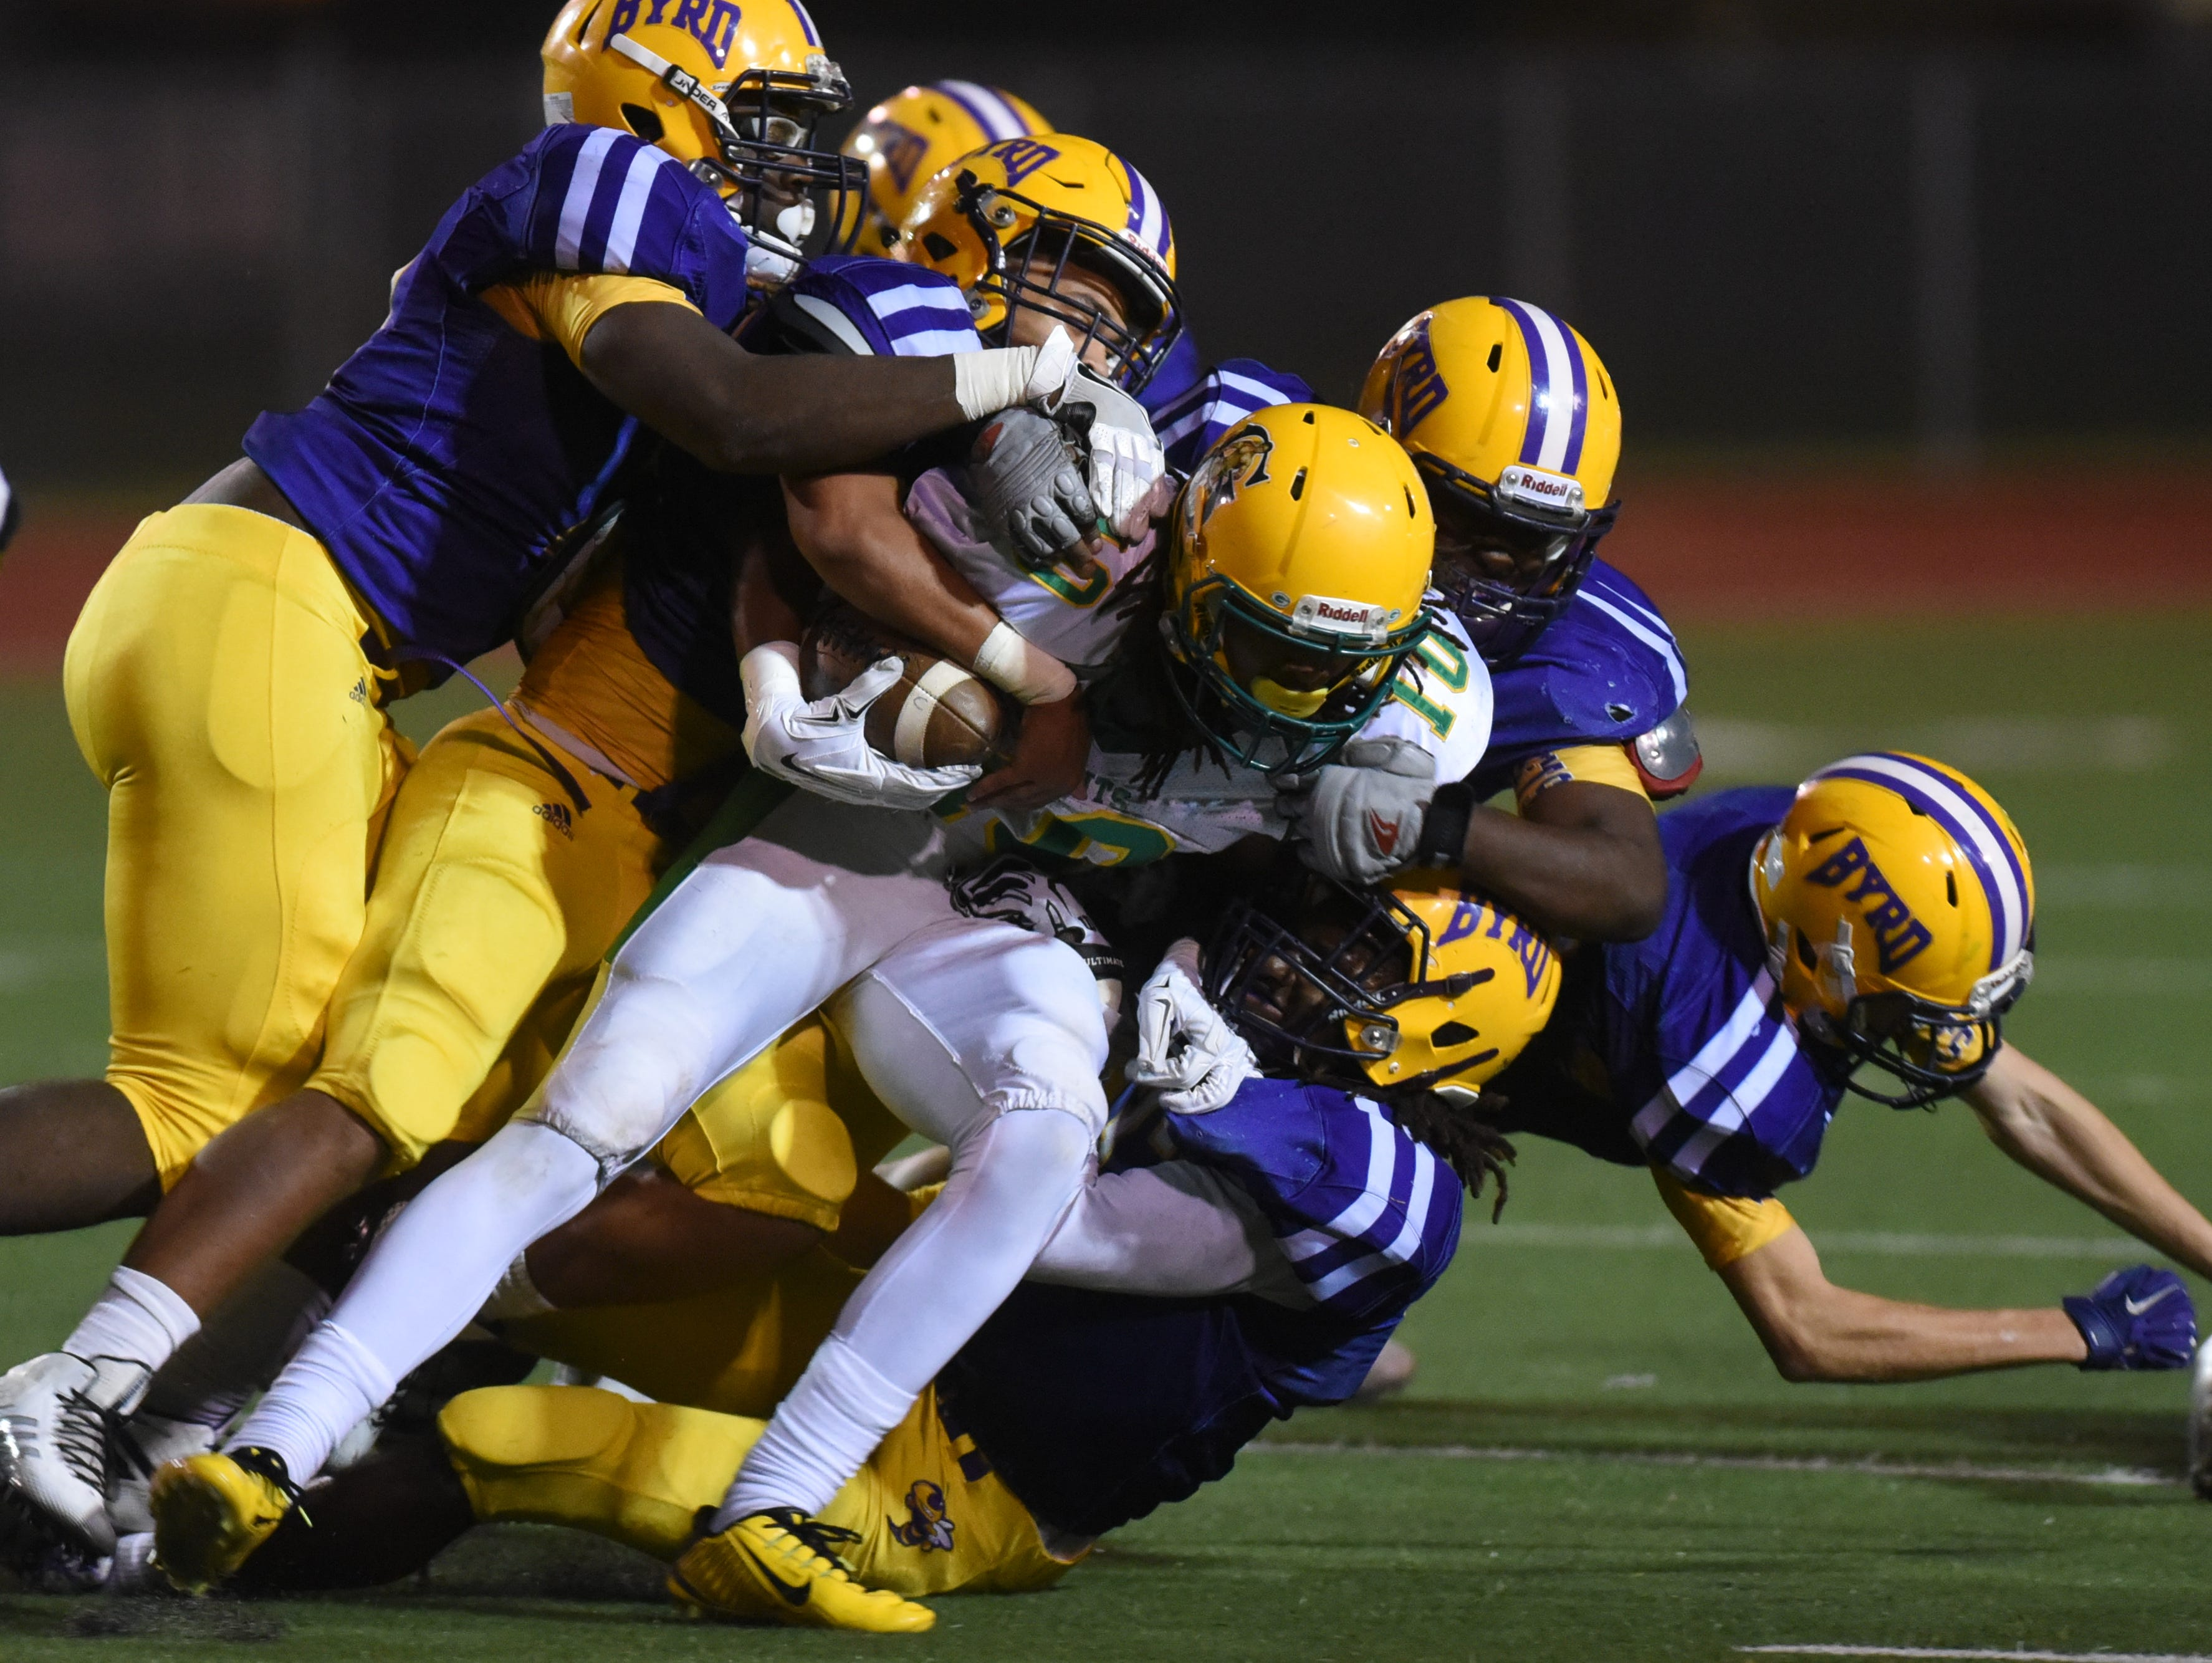 Green Oaks Kenric Jackson is swarmed by the Yellow Jackets defensive line during their game at Lee Hedges Stadium.